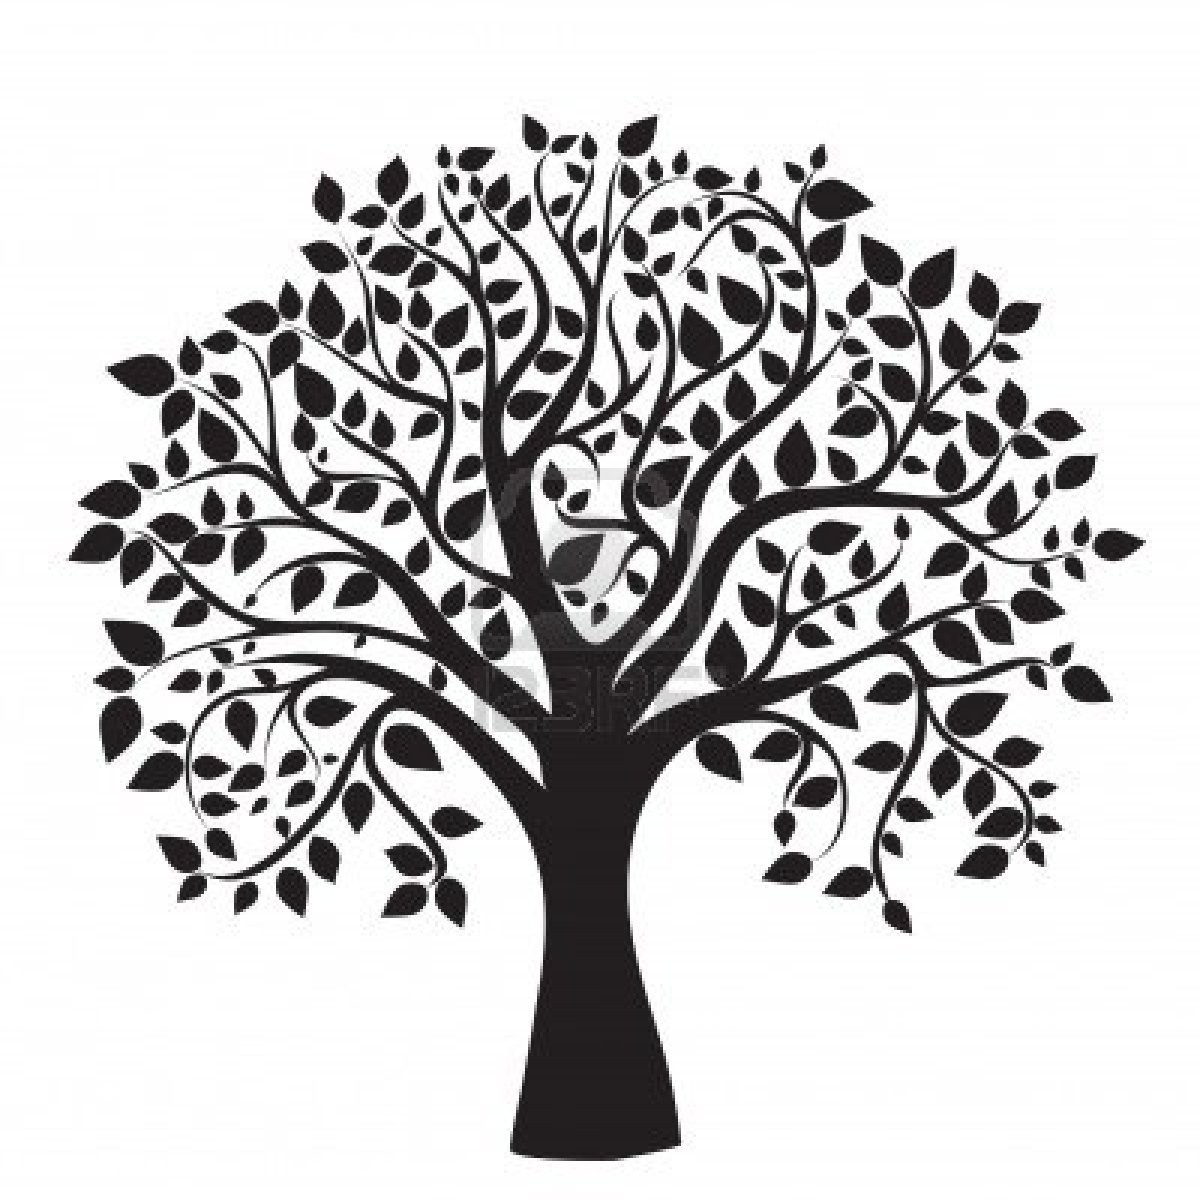 1200x1200 Collection Of Free Genealogies Clipart Magnolia Tree. Download On